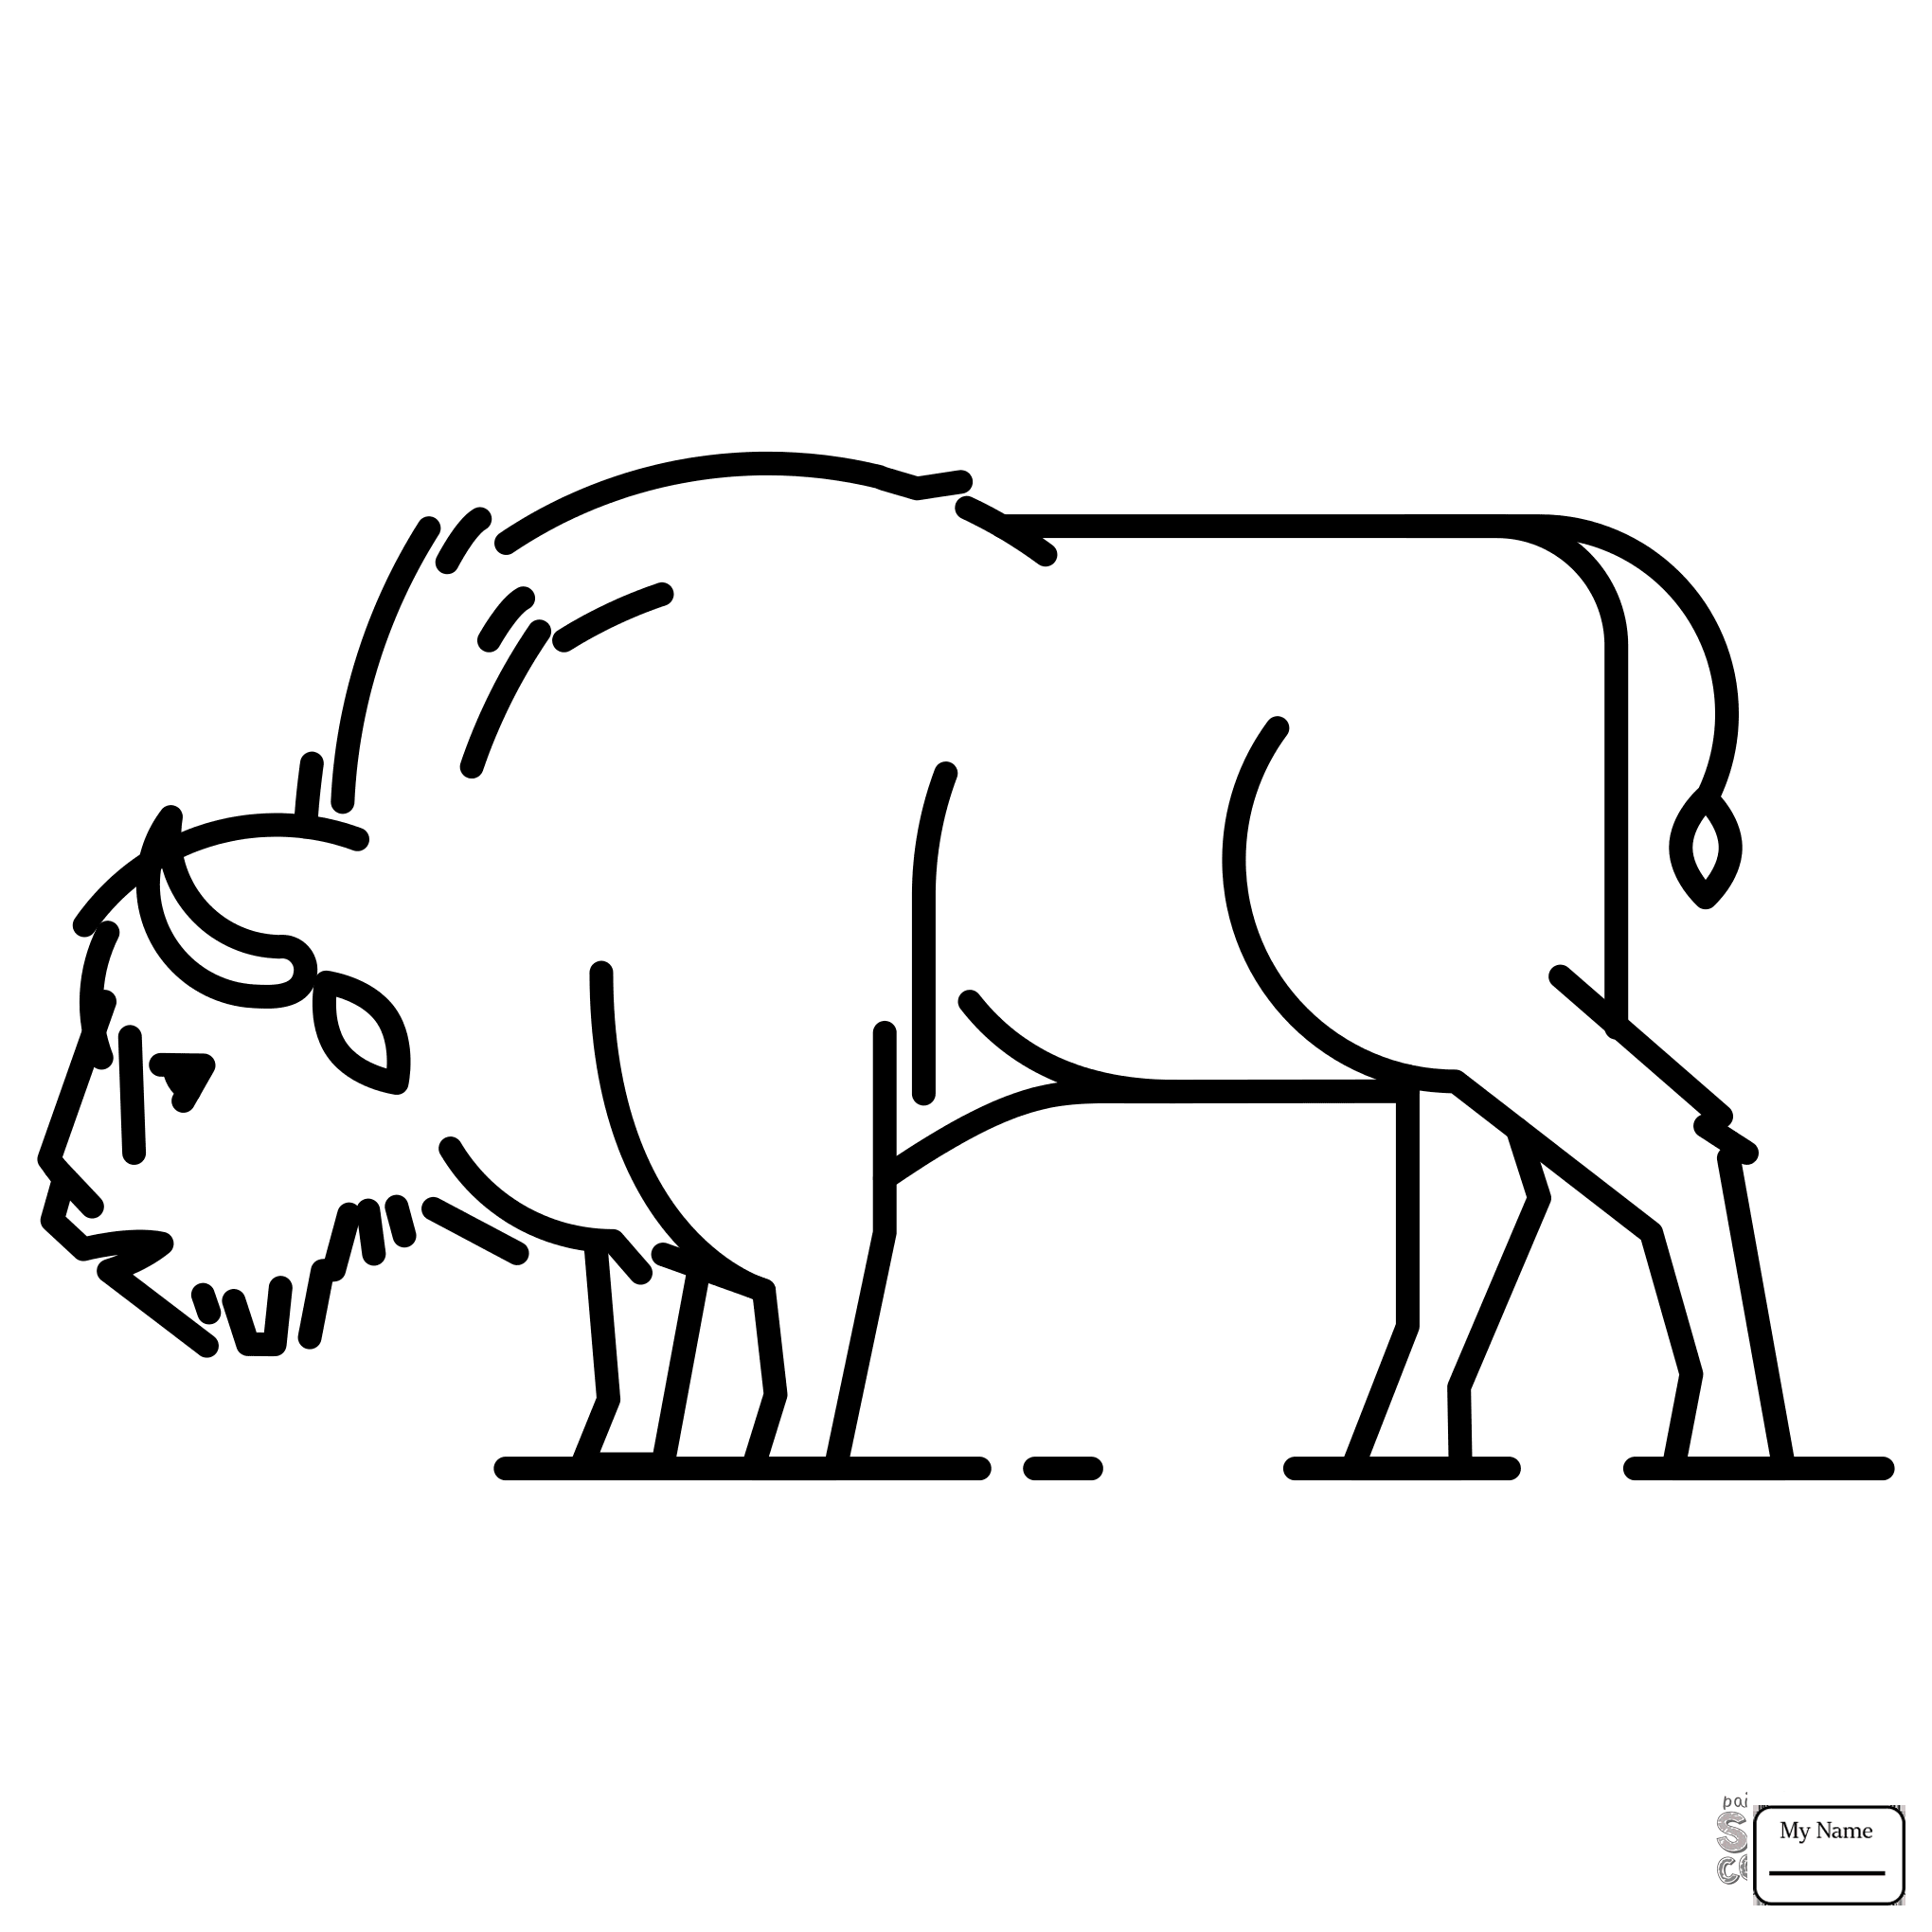 2040x2040 Coloring Pages For Kids Mammals American Bison With Calve